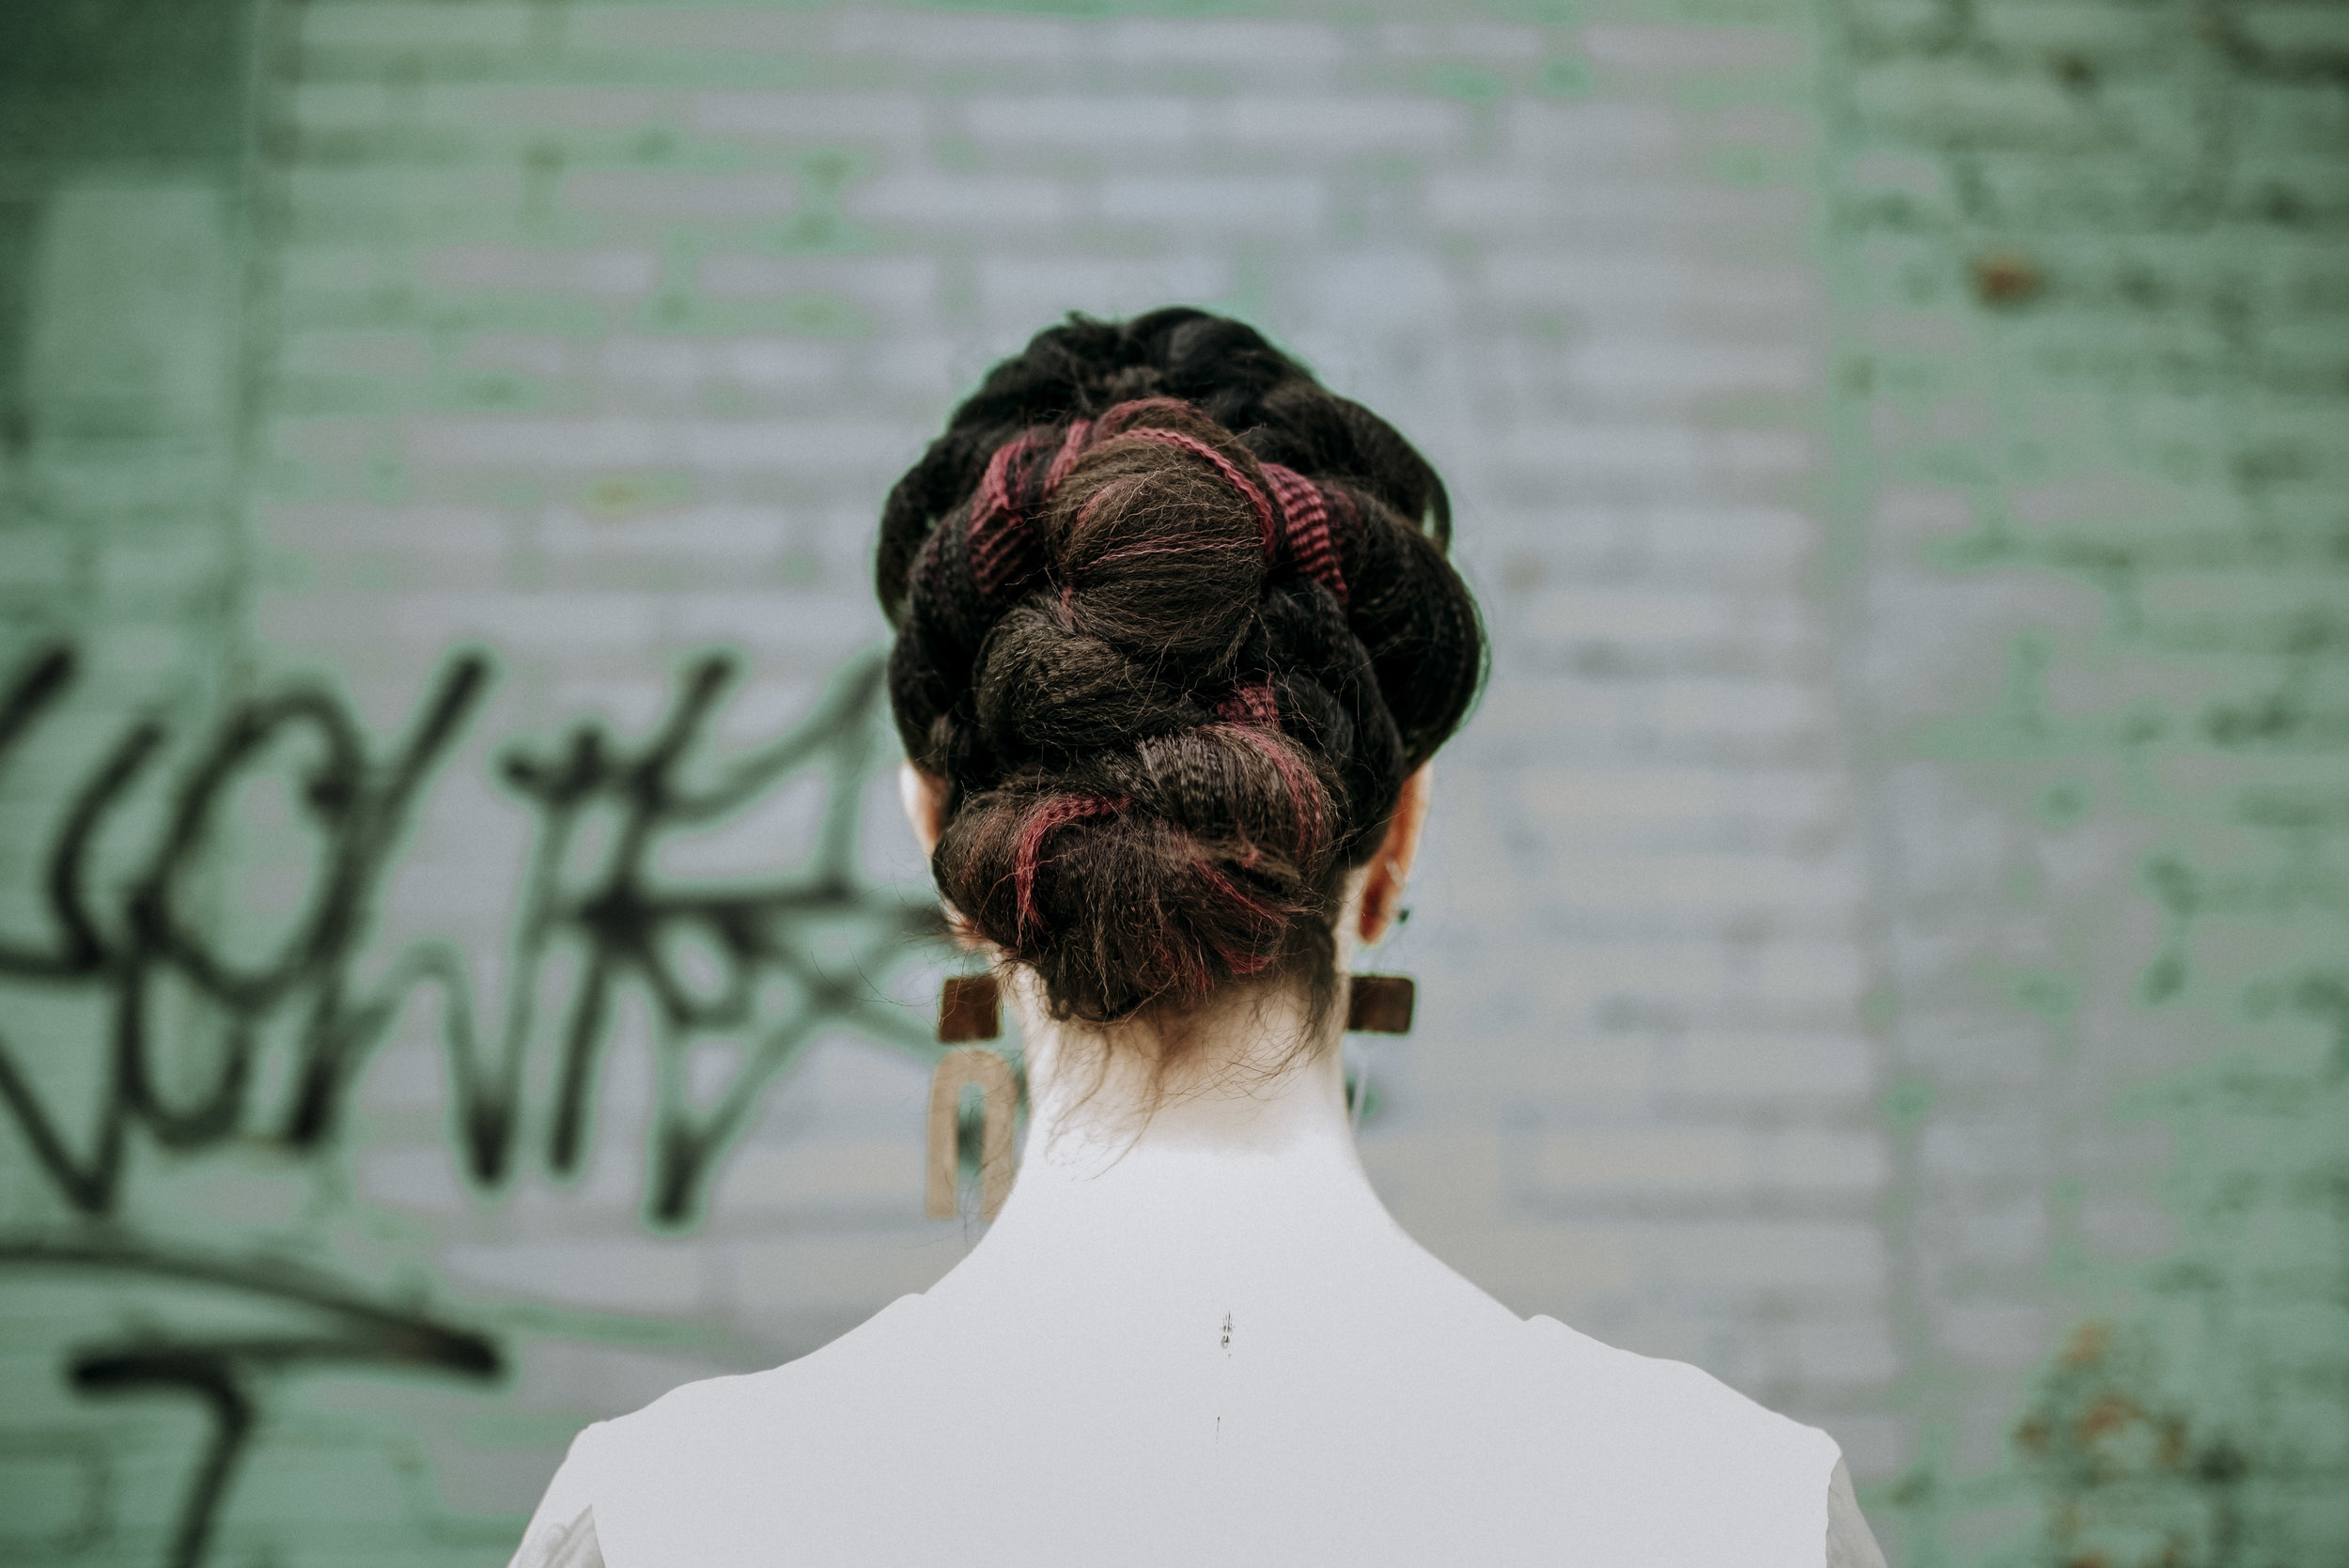 Amazing modern hair by  Tula Organics , who's owner Becky, taught me so much about beauty and waste | Photo by Sandrachile